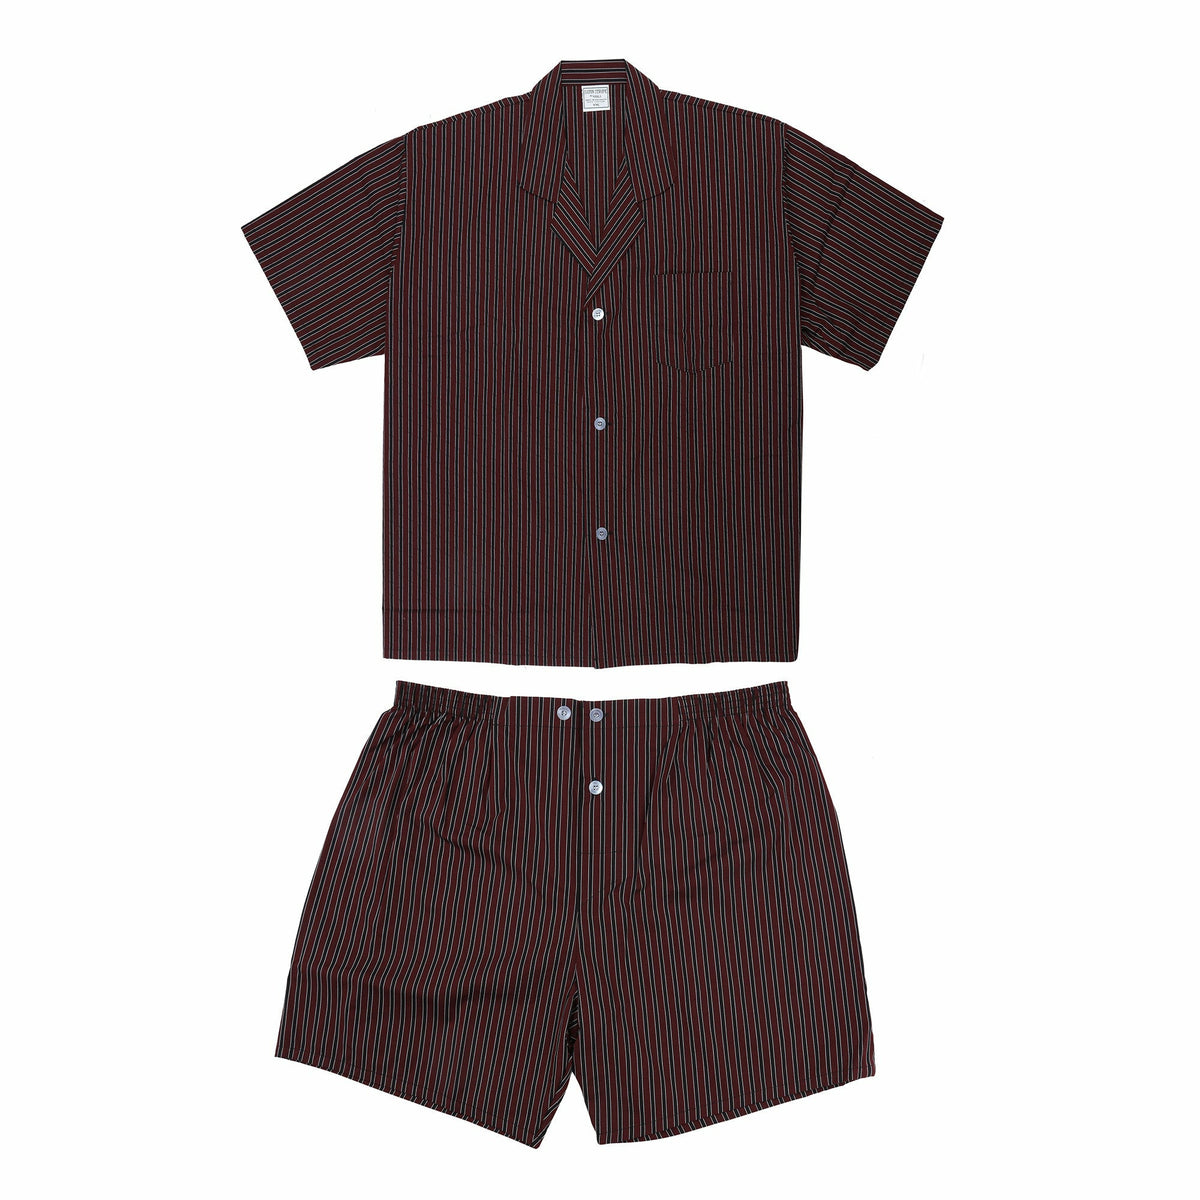 Koala Cotton Pyjama Set in Burgundy